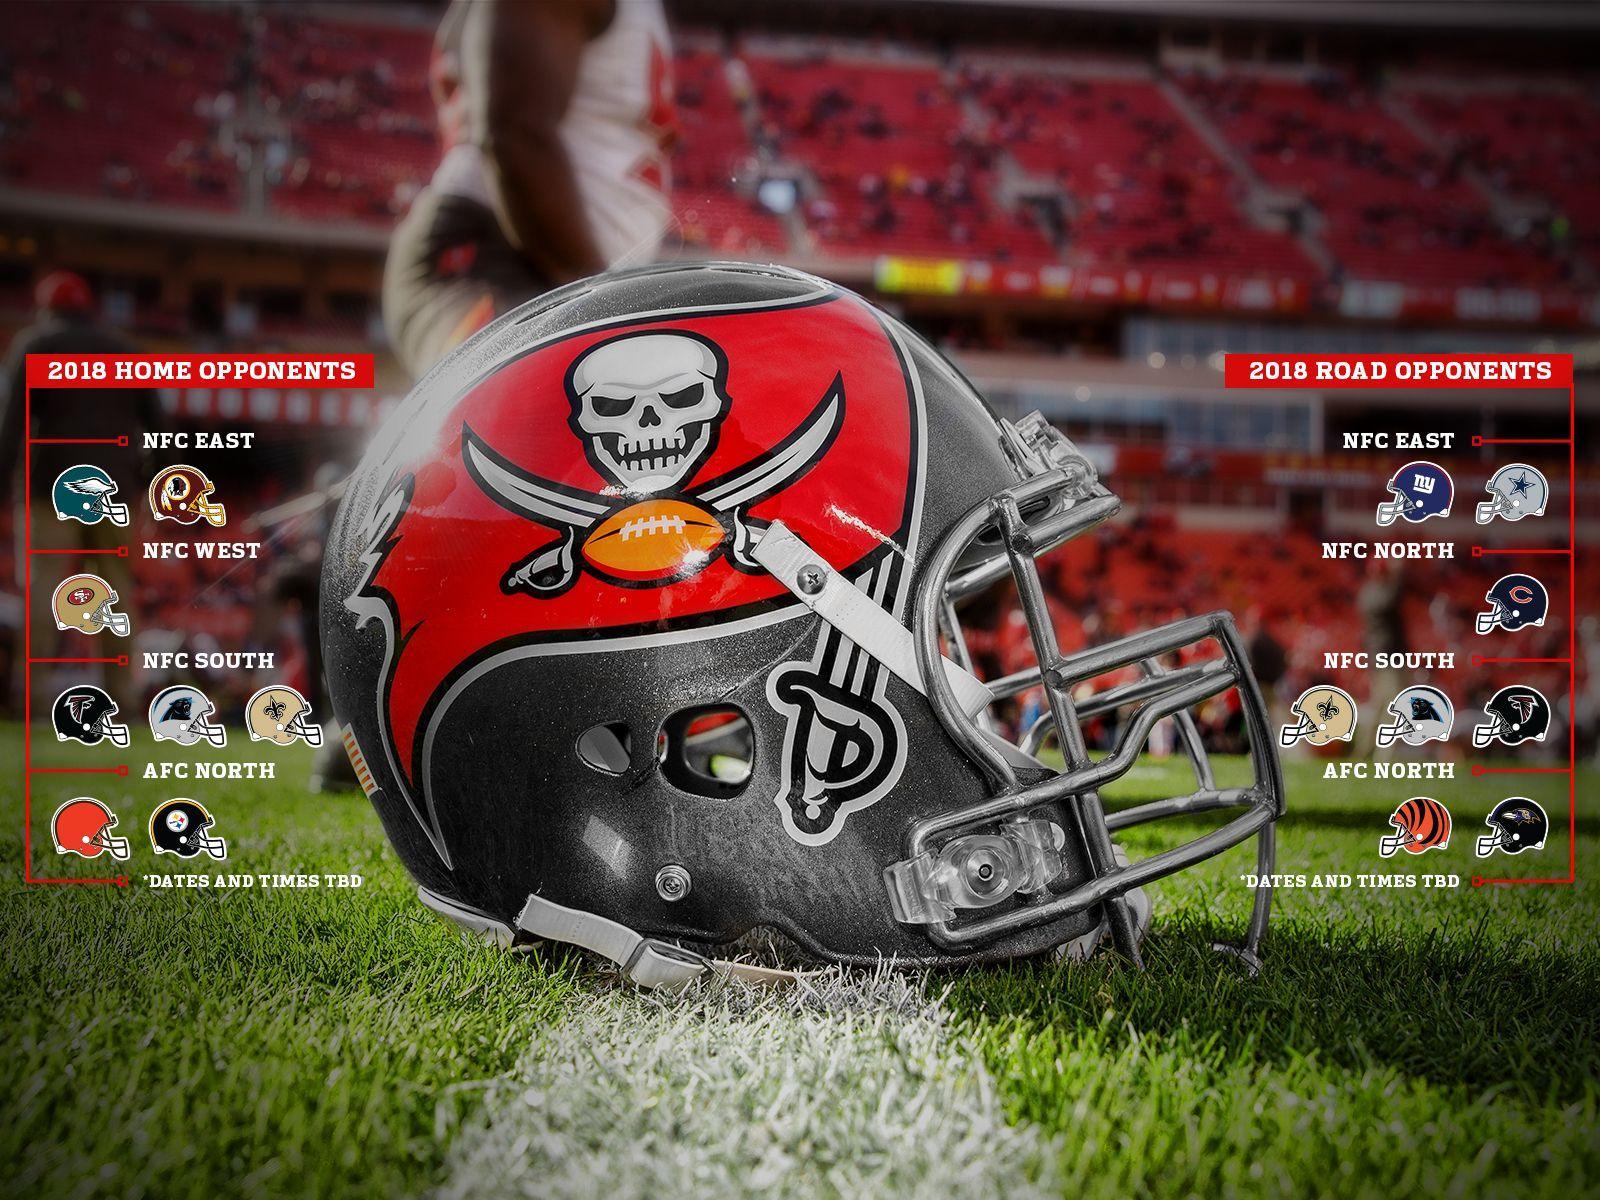 tampa bay buccaneers 2018 wallpapers wallpaper cave tampa bay buccaneers 2018 wallpapers